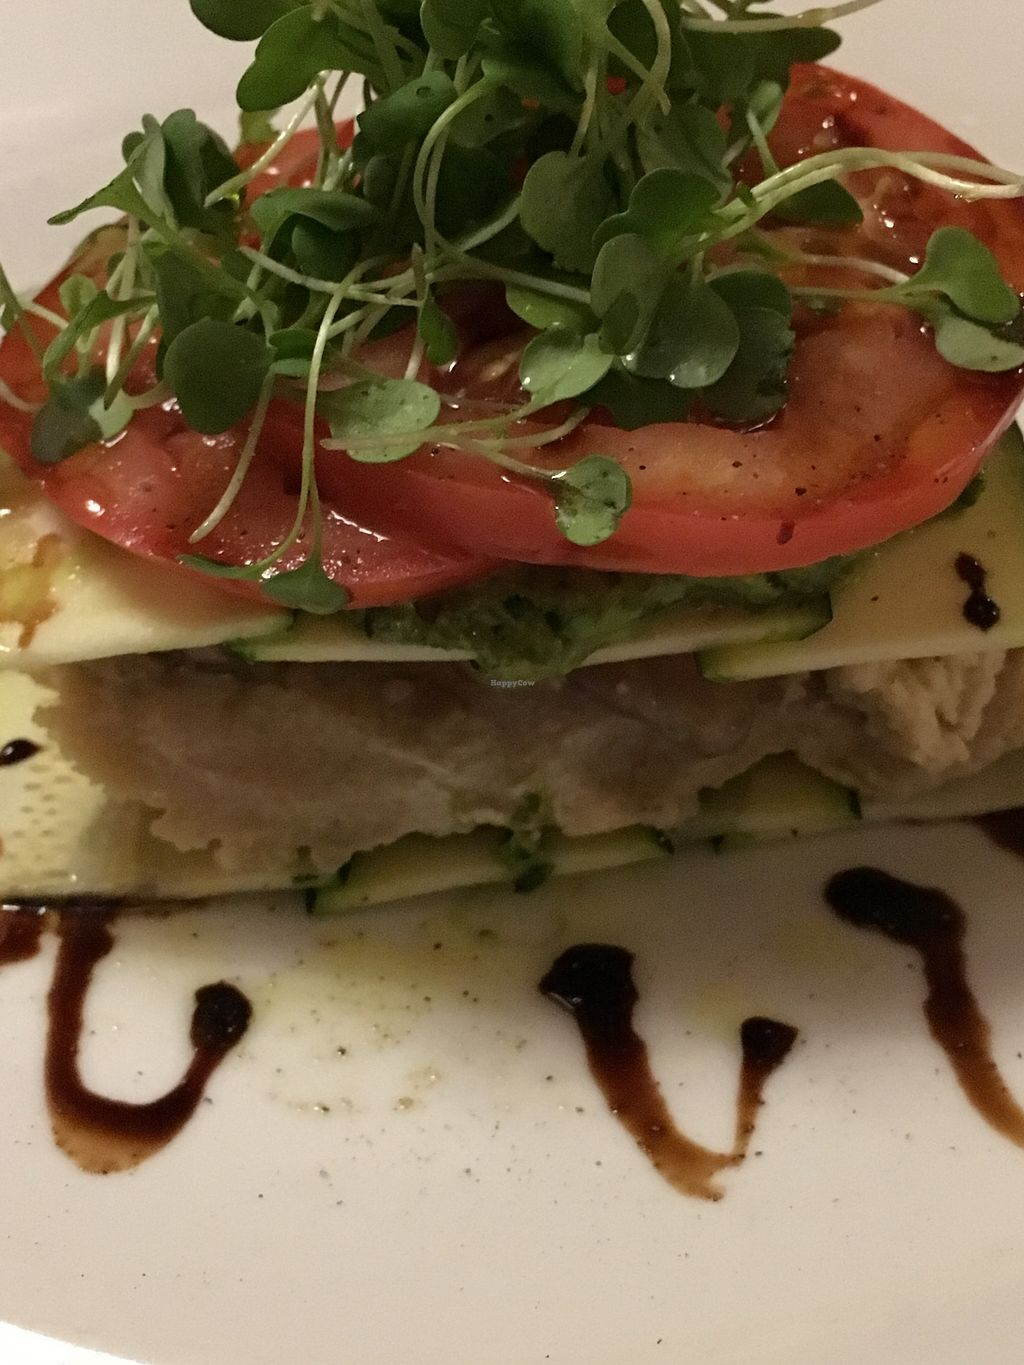 """Photo of Candle 79  by <a href=""""/members/profile/cookiem"""">cookiem</a> <br/>Live heirloom tomato and zucchini lasagna <br/> July 31, 2017  - <a href='/contact/abuse/image/4849/287221'>Report</a>"""